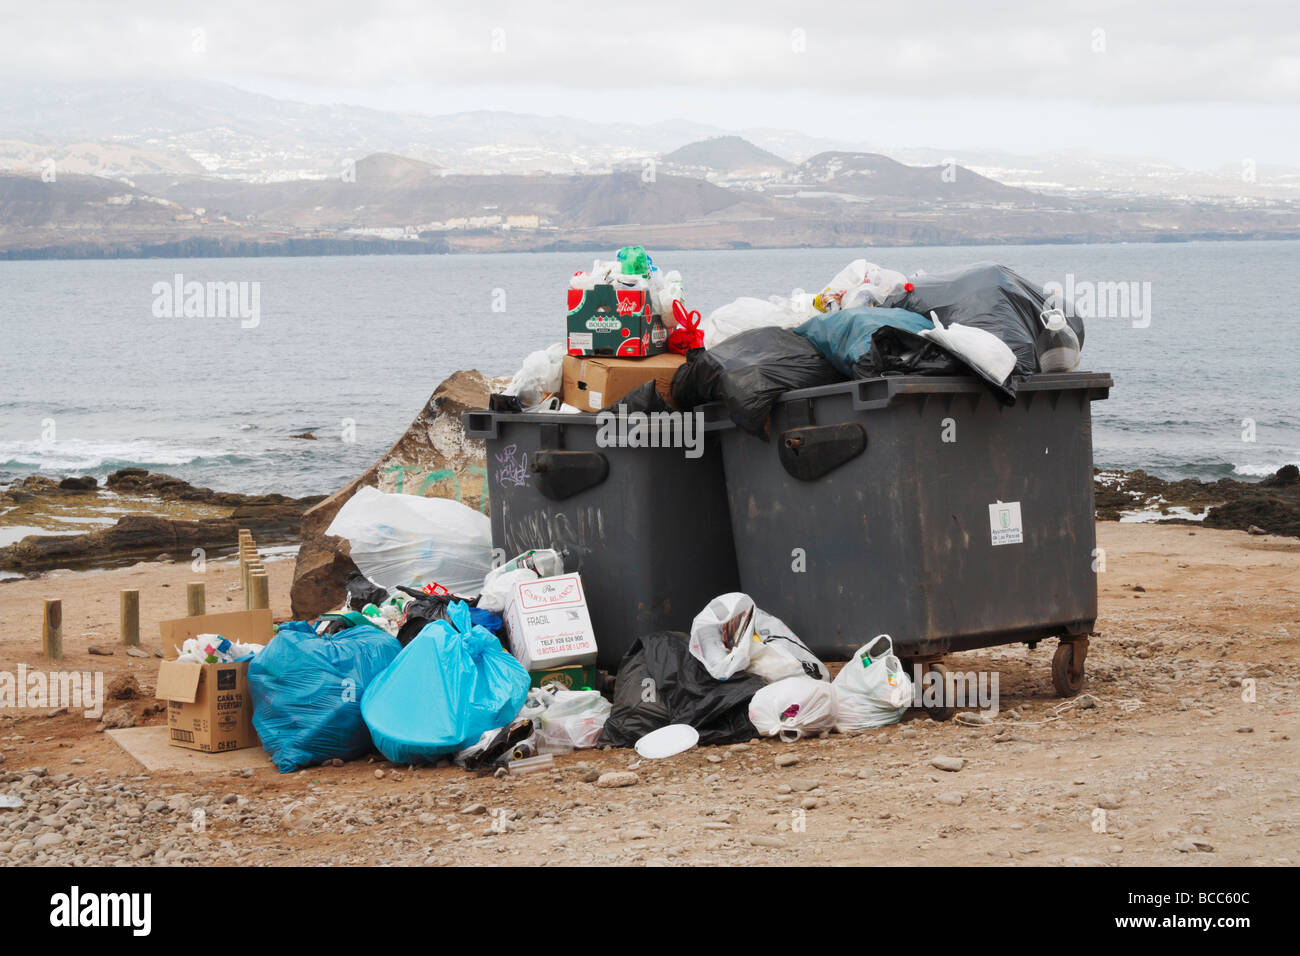 Piles of rubbish around rubbish containers after weekend near beach in Spain - Stock Image